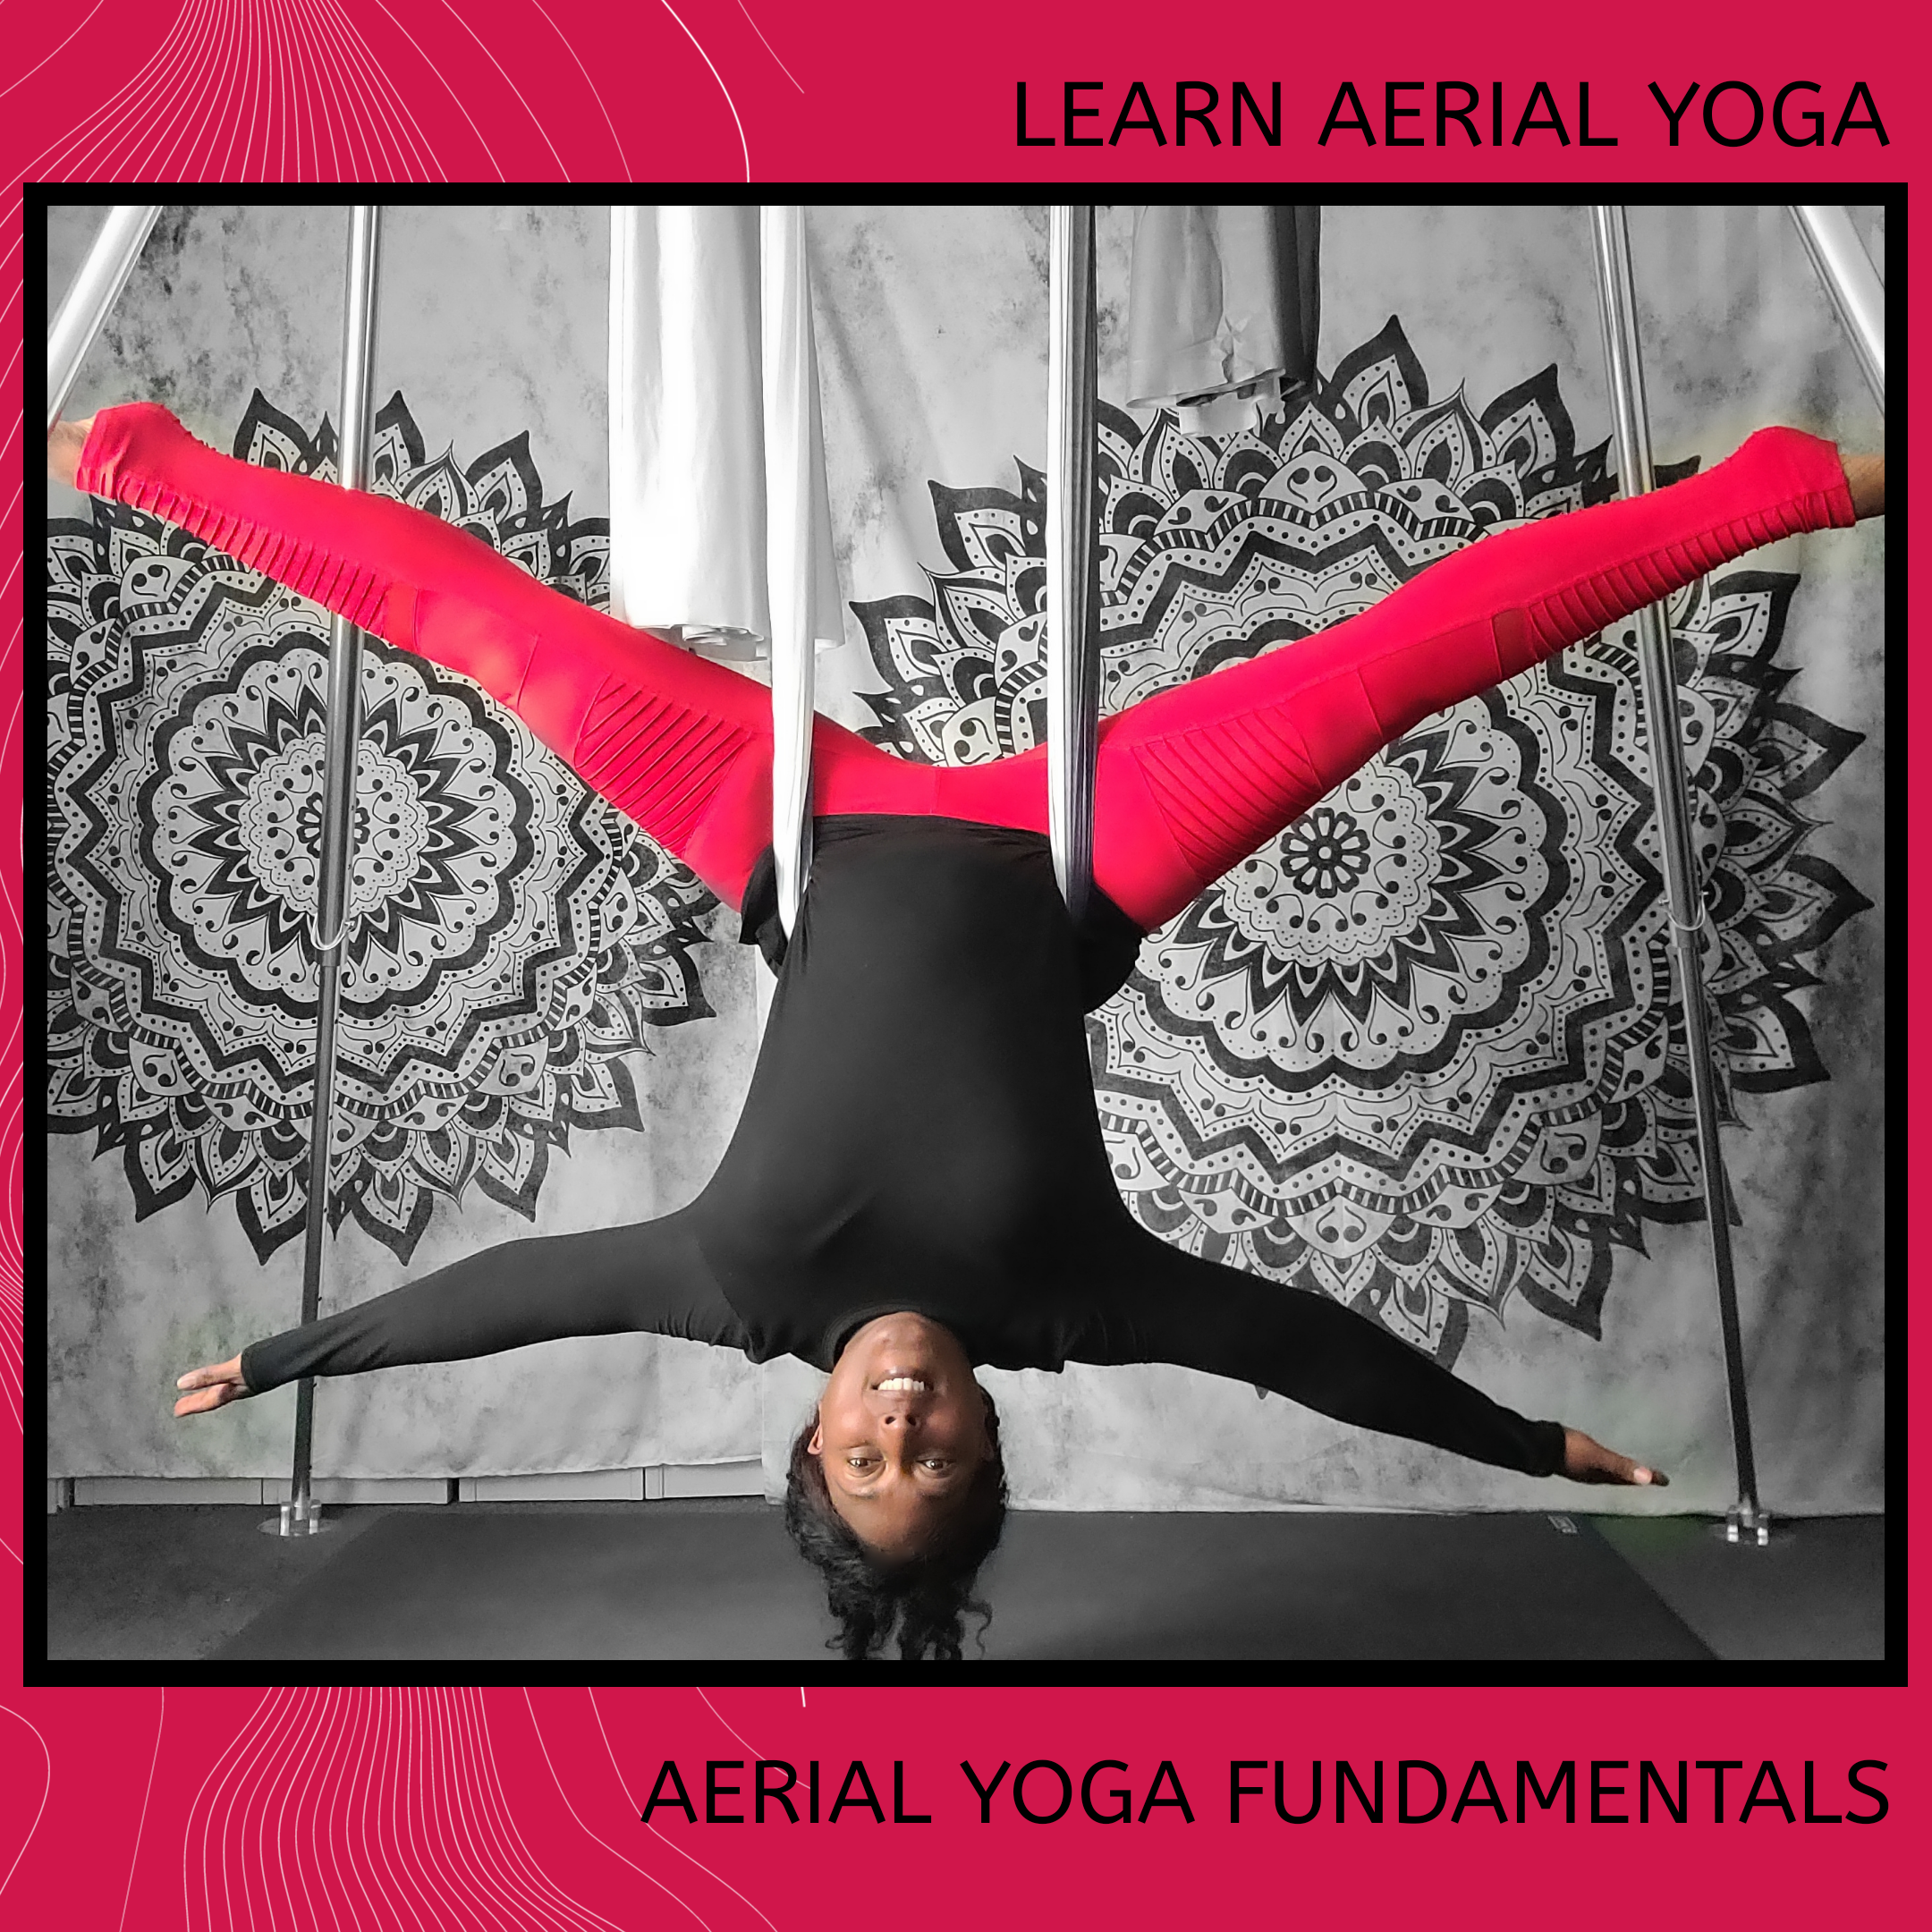 fundamentals_aerial_yoga_char_willingham